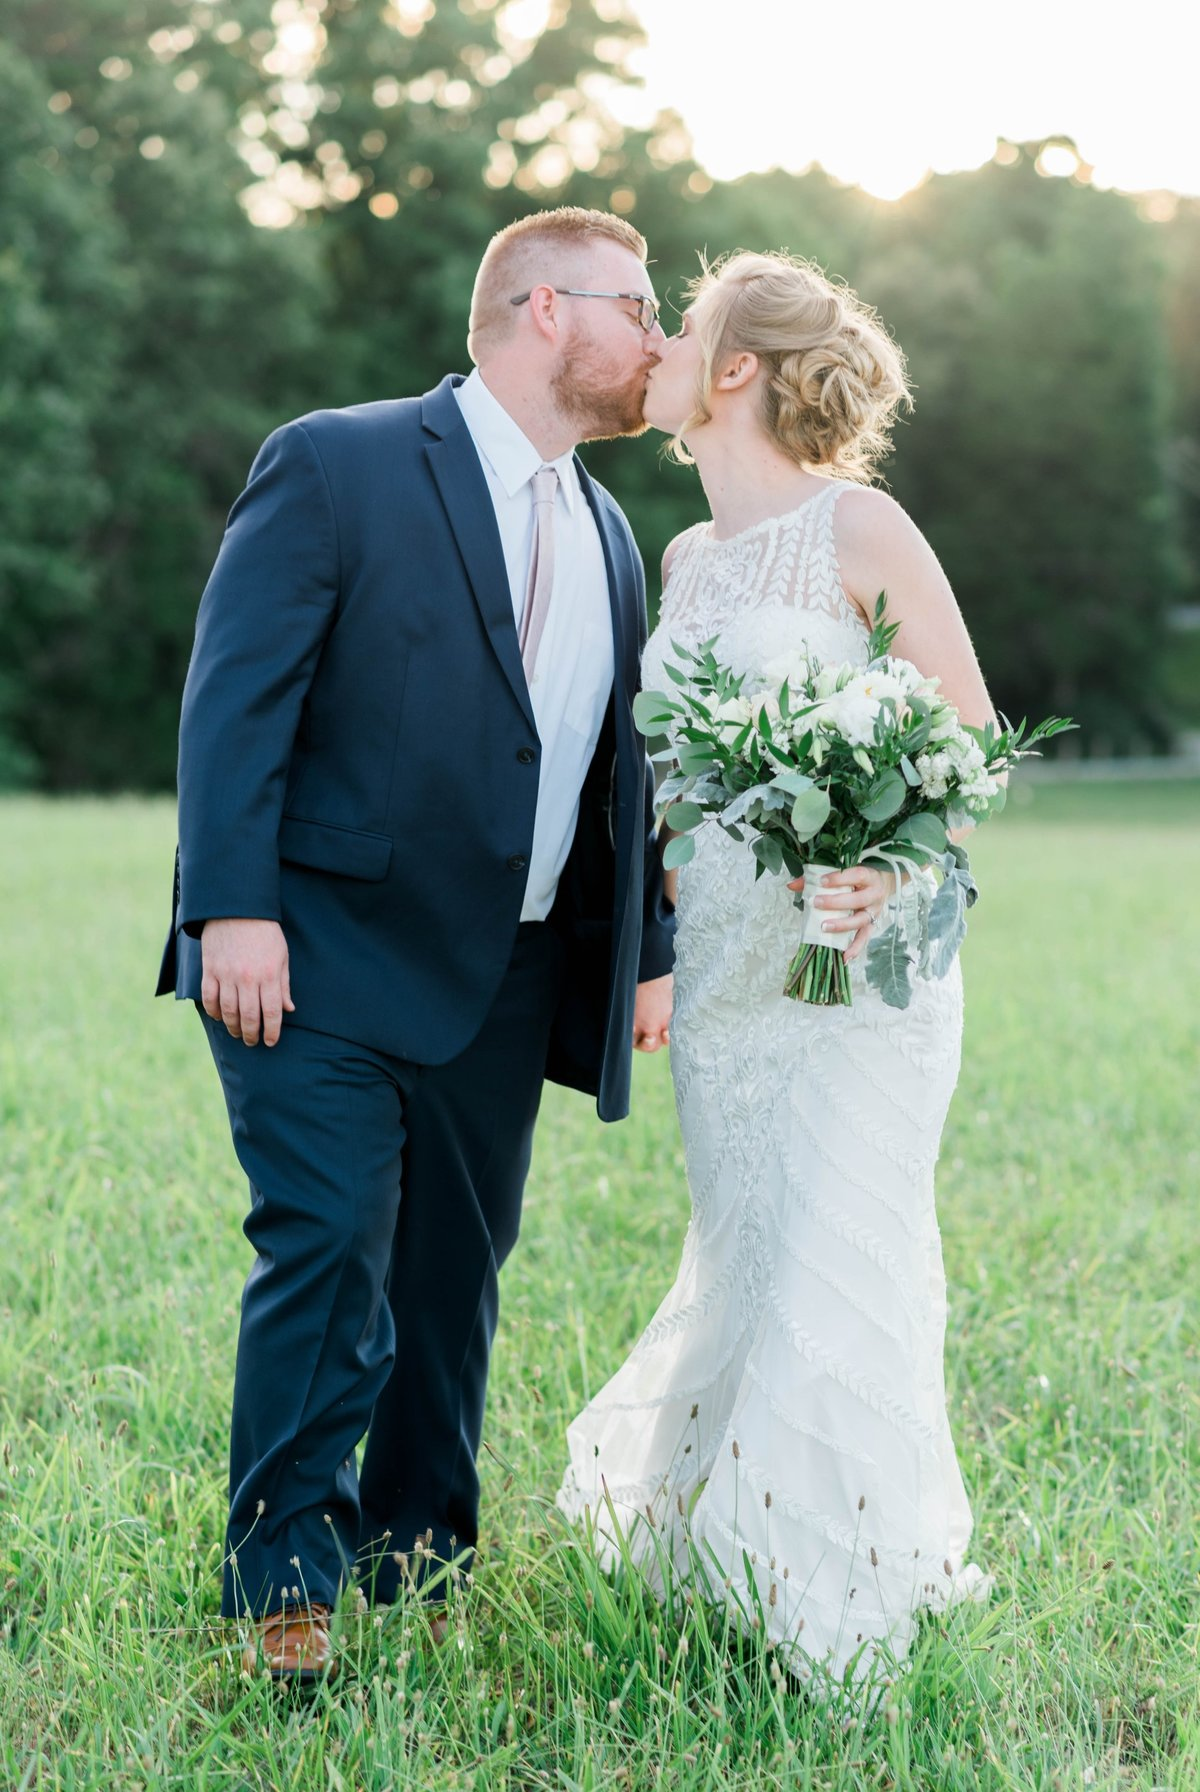 SorellaFarms_VirginiaWeddingPhotographer_BarnWedding_Lynchburgweddingphotographer_DanielleTyler+27(2)